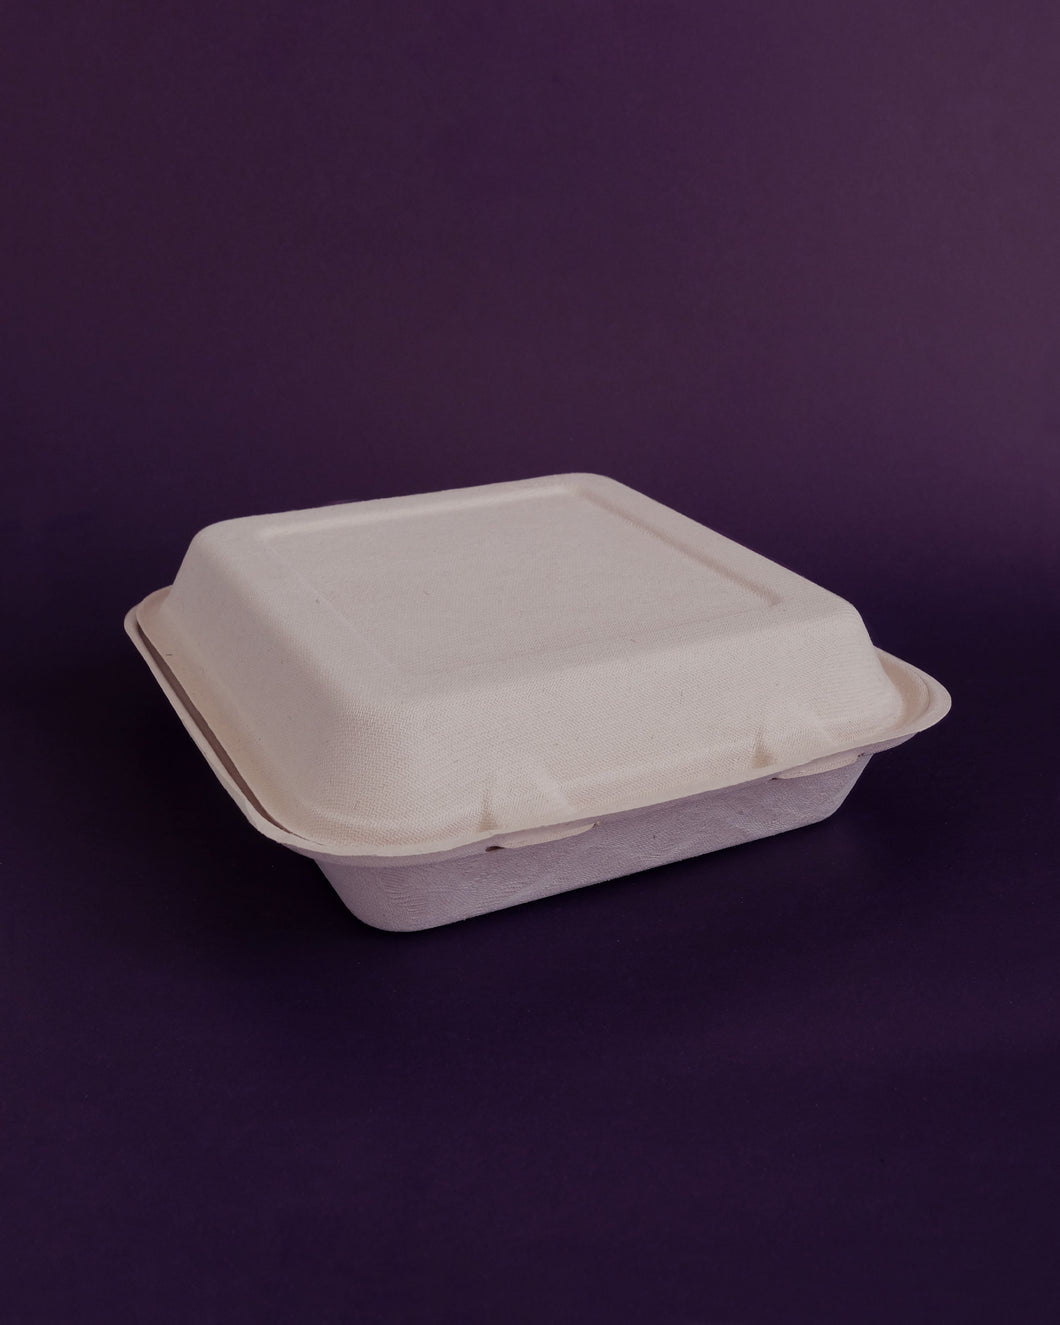 Sip Pak [40% OFF] Medium Clam - 1,200 ml Square Sugarcane Clamshell Container (50pcs) - Loop.